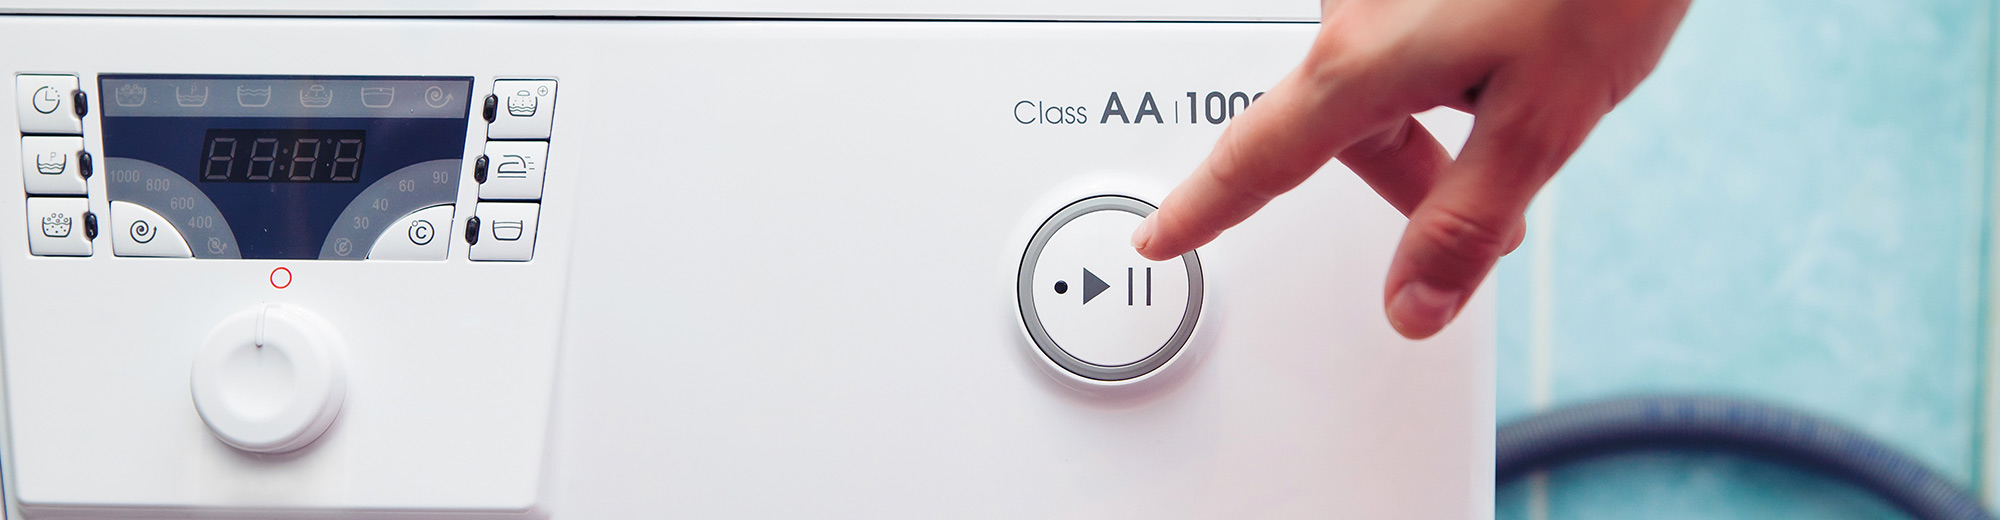 Appliance Controls